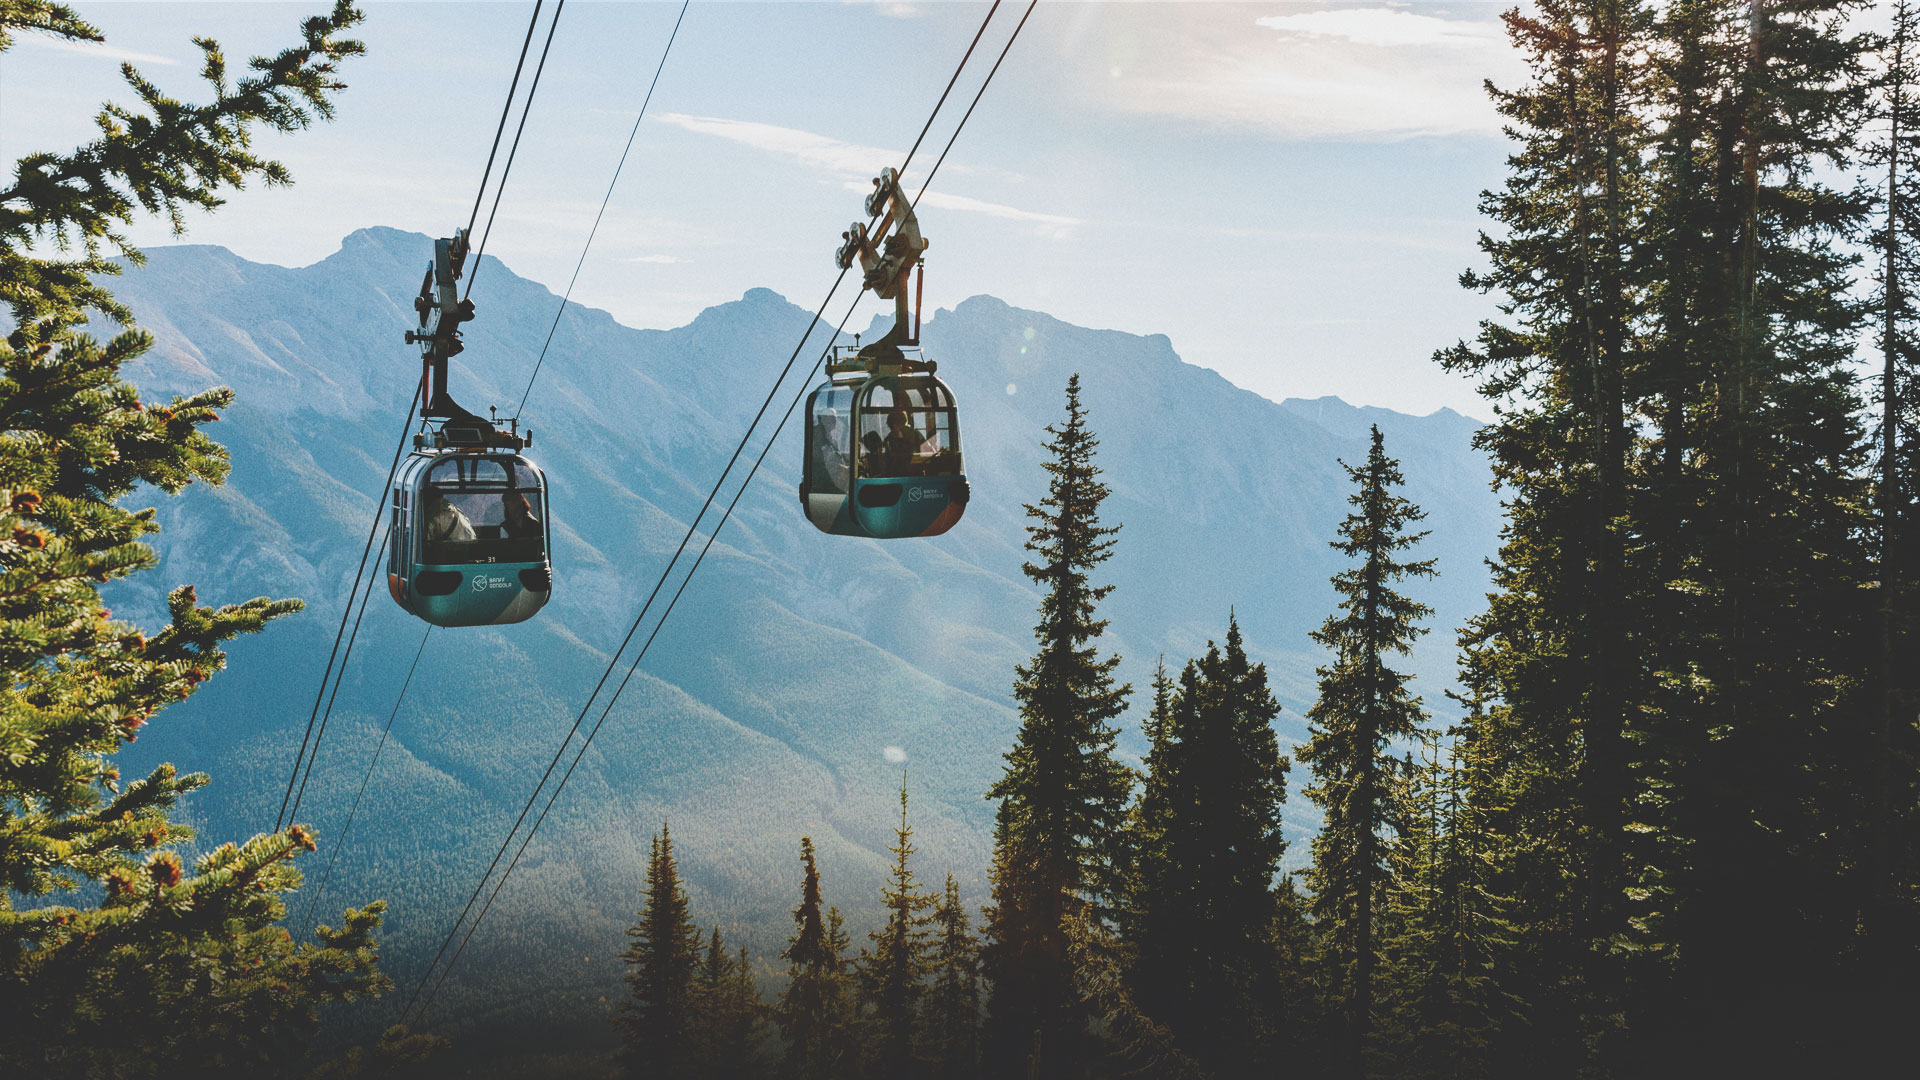 Book a Banff Gondola Deal